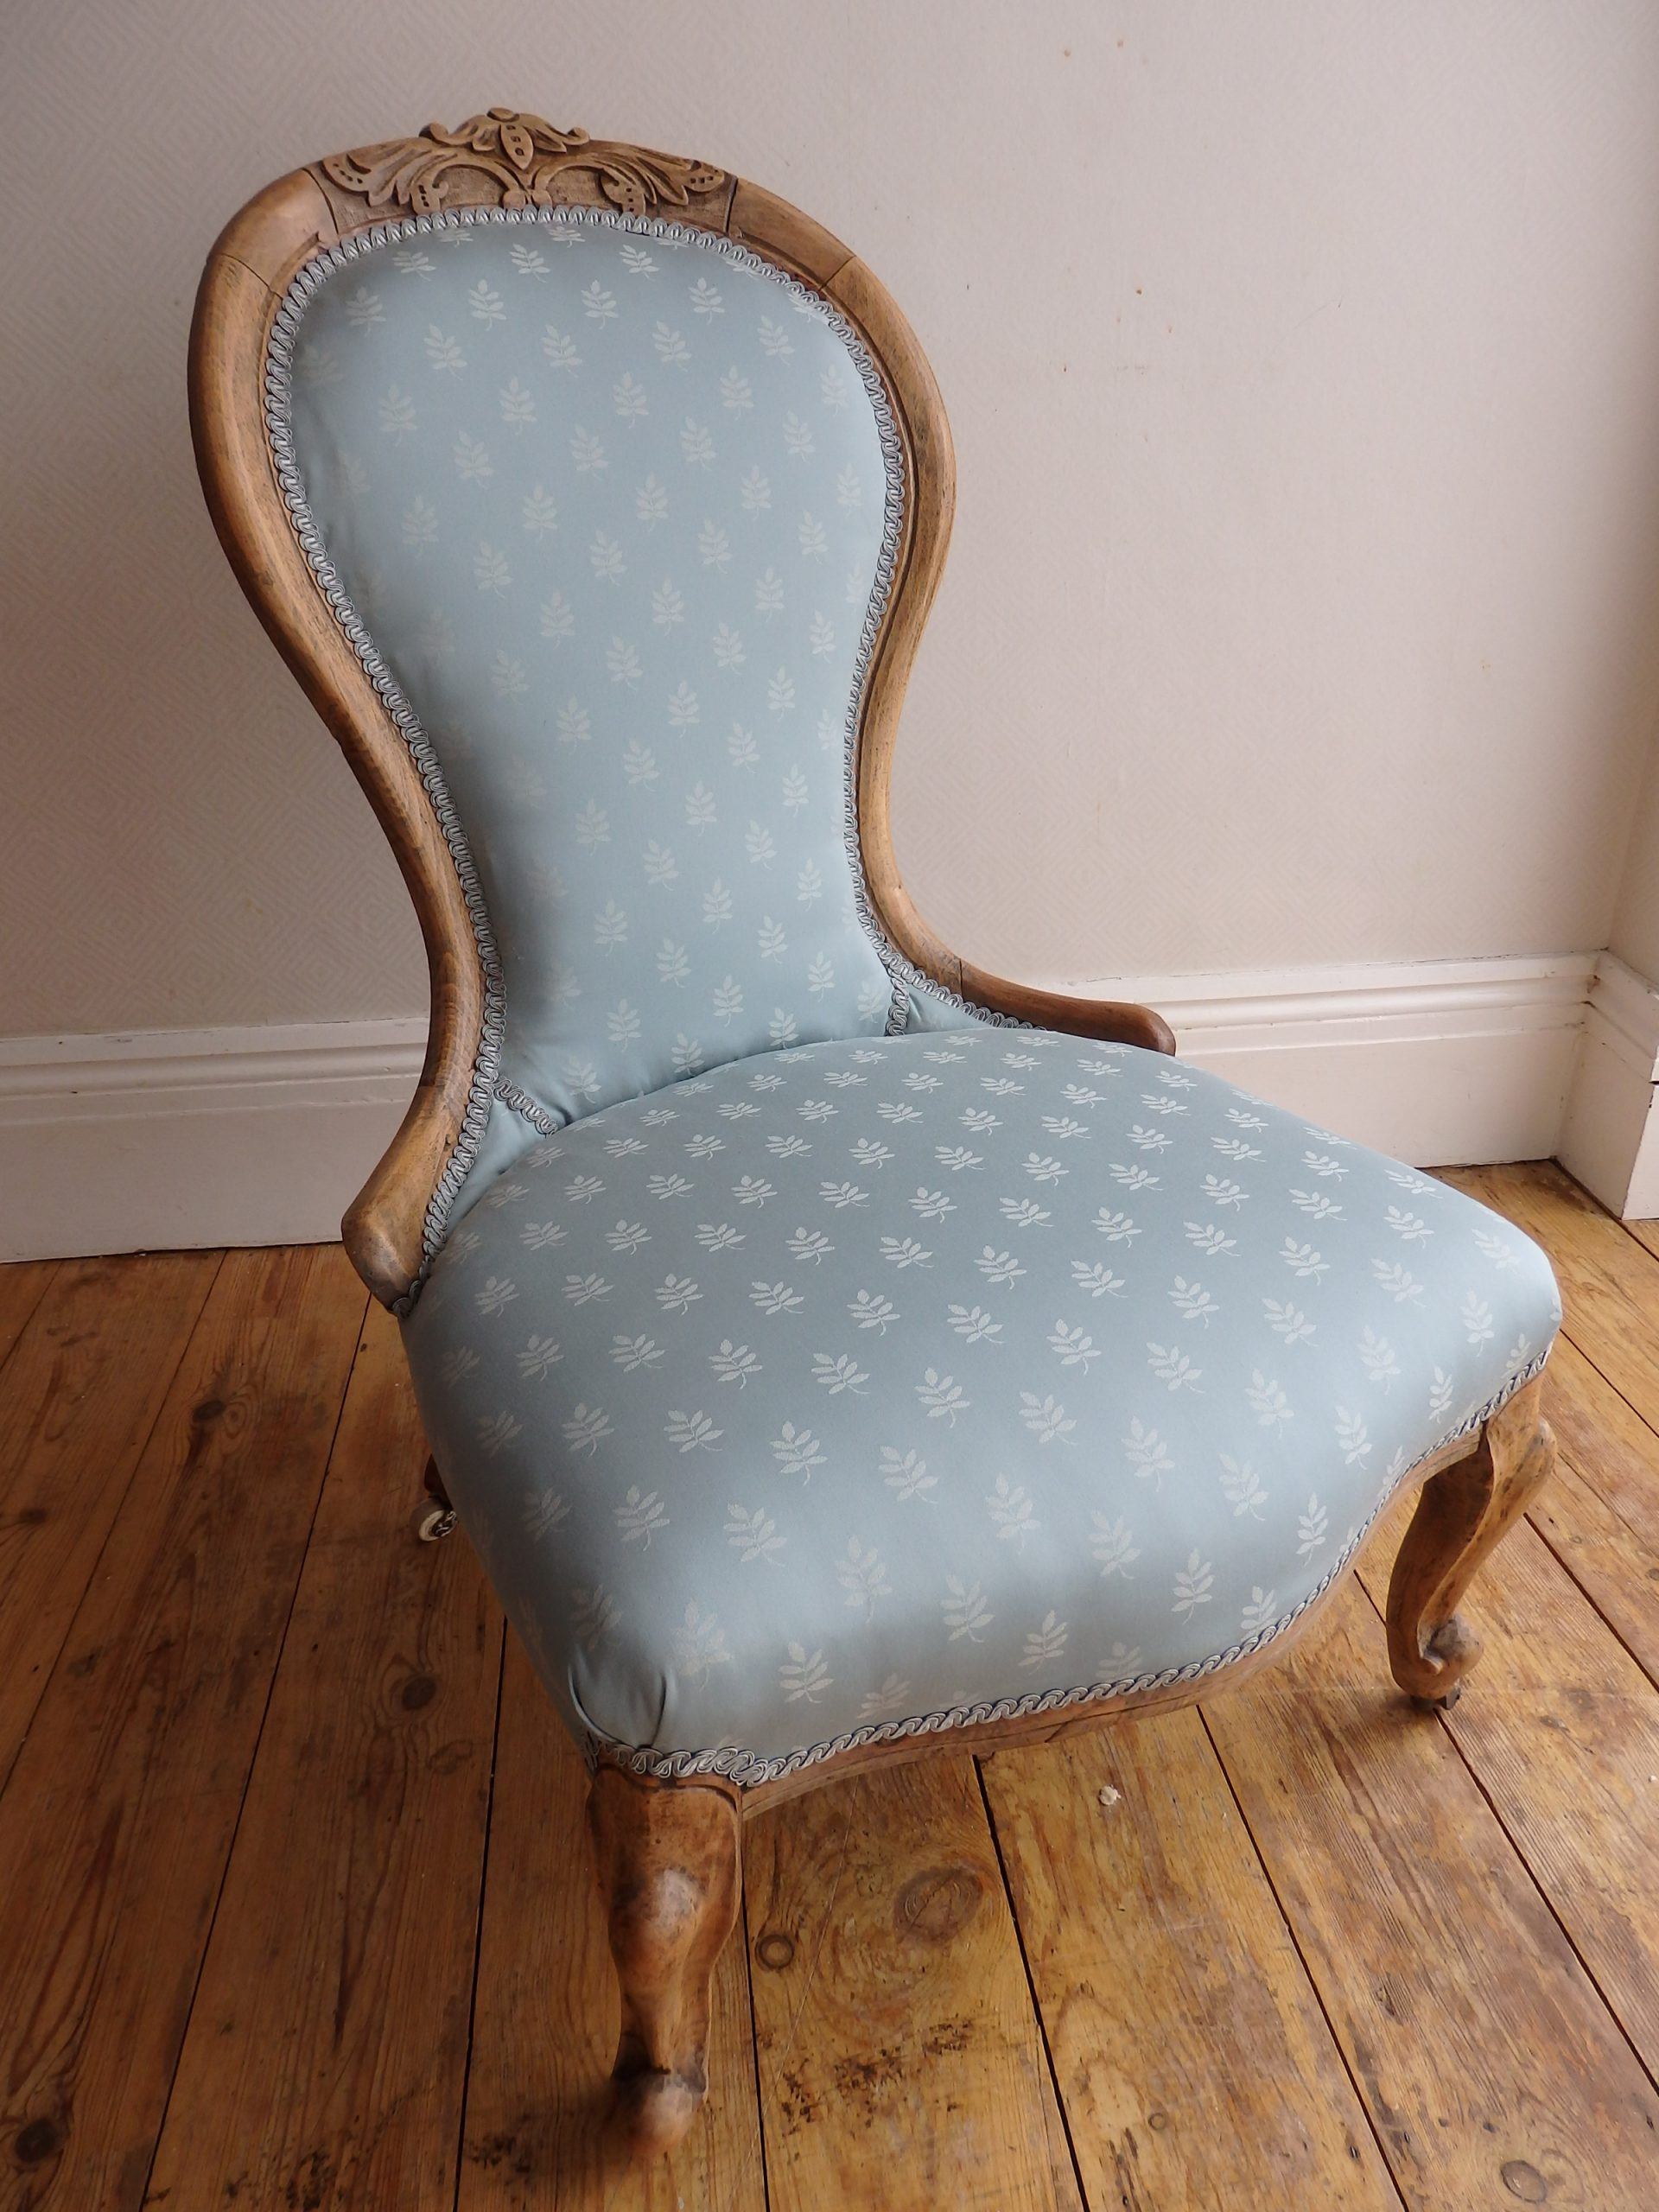 Restored Nursing Chair